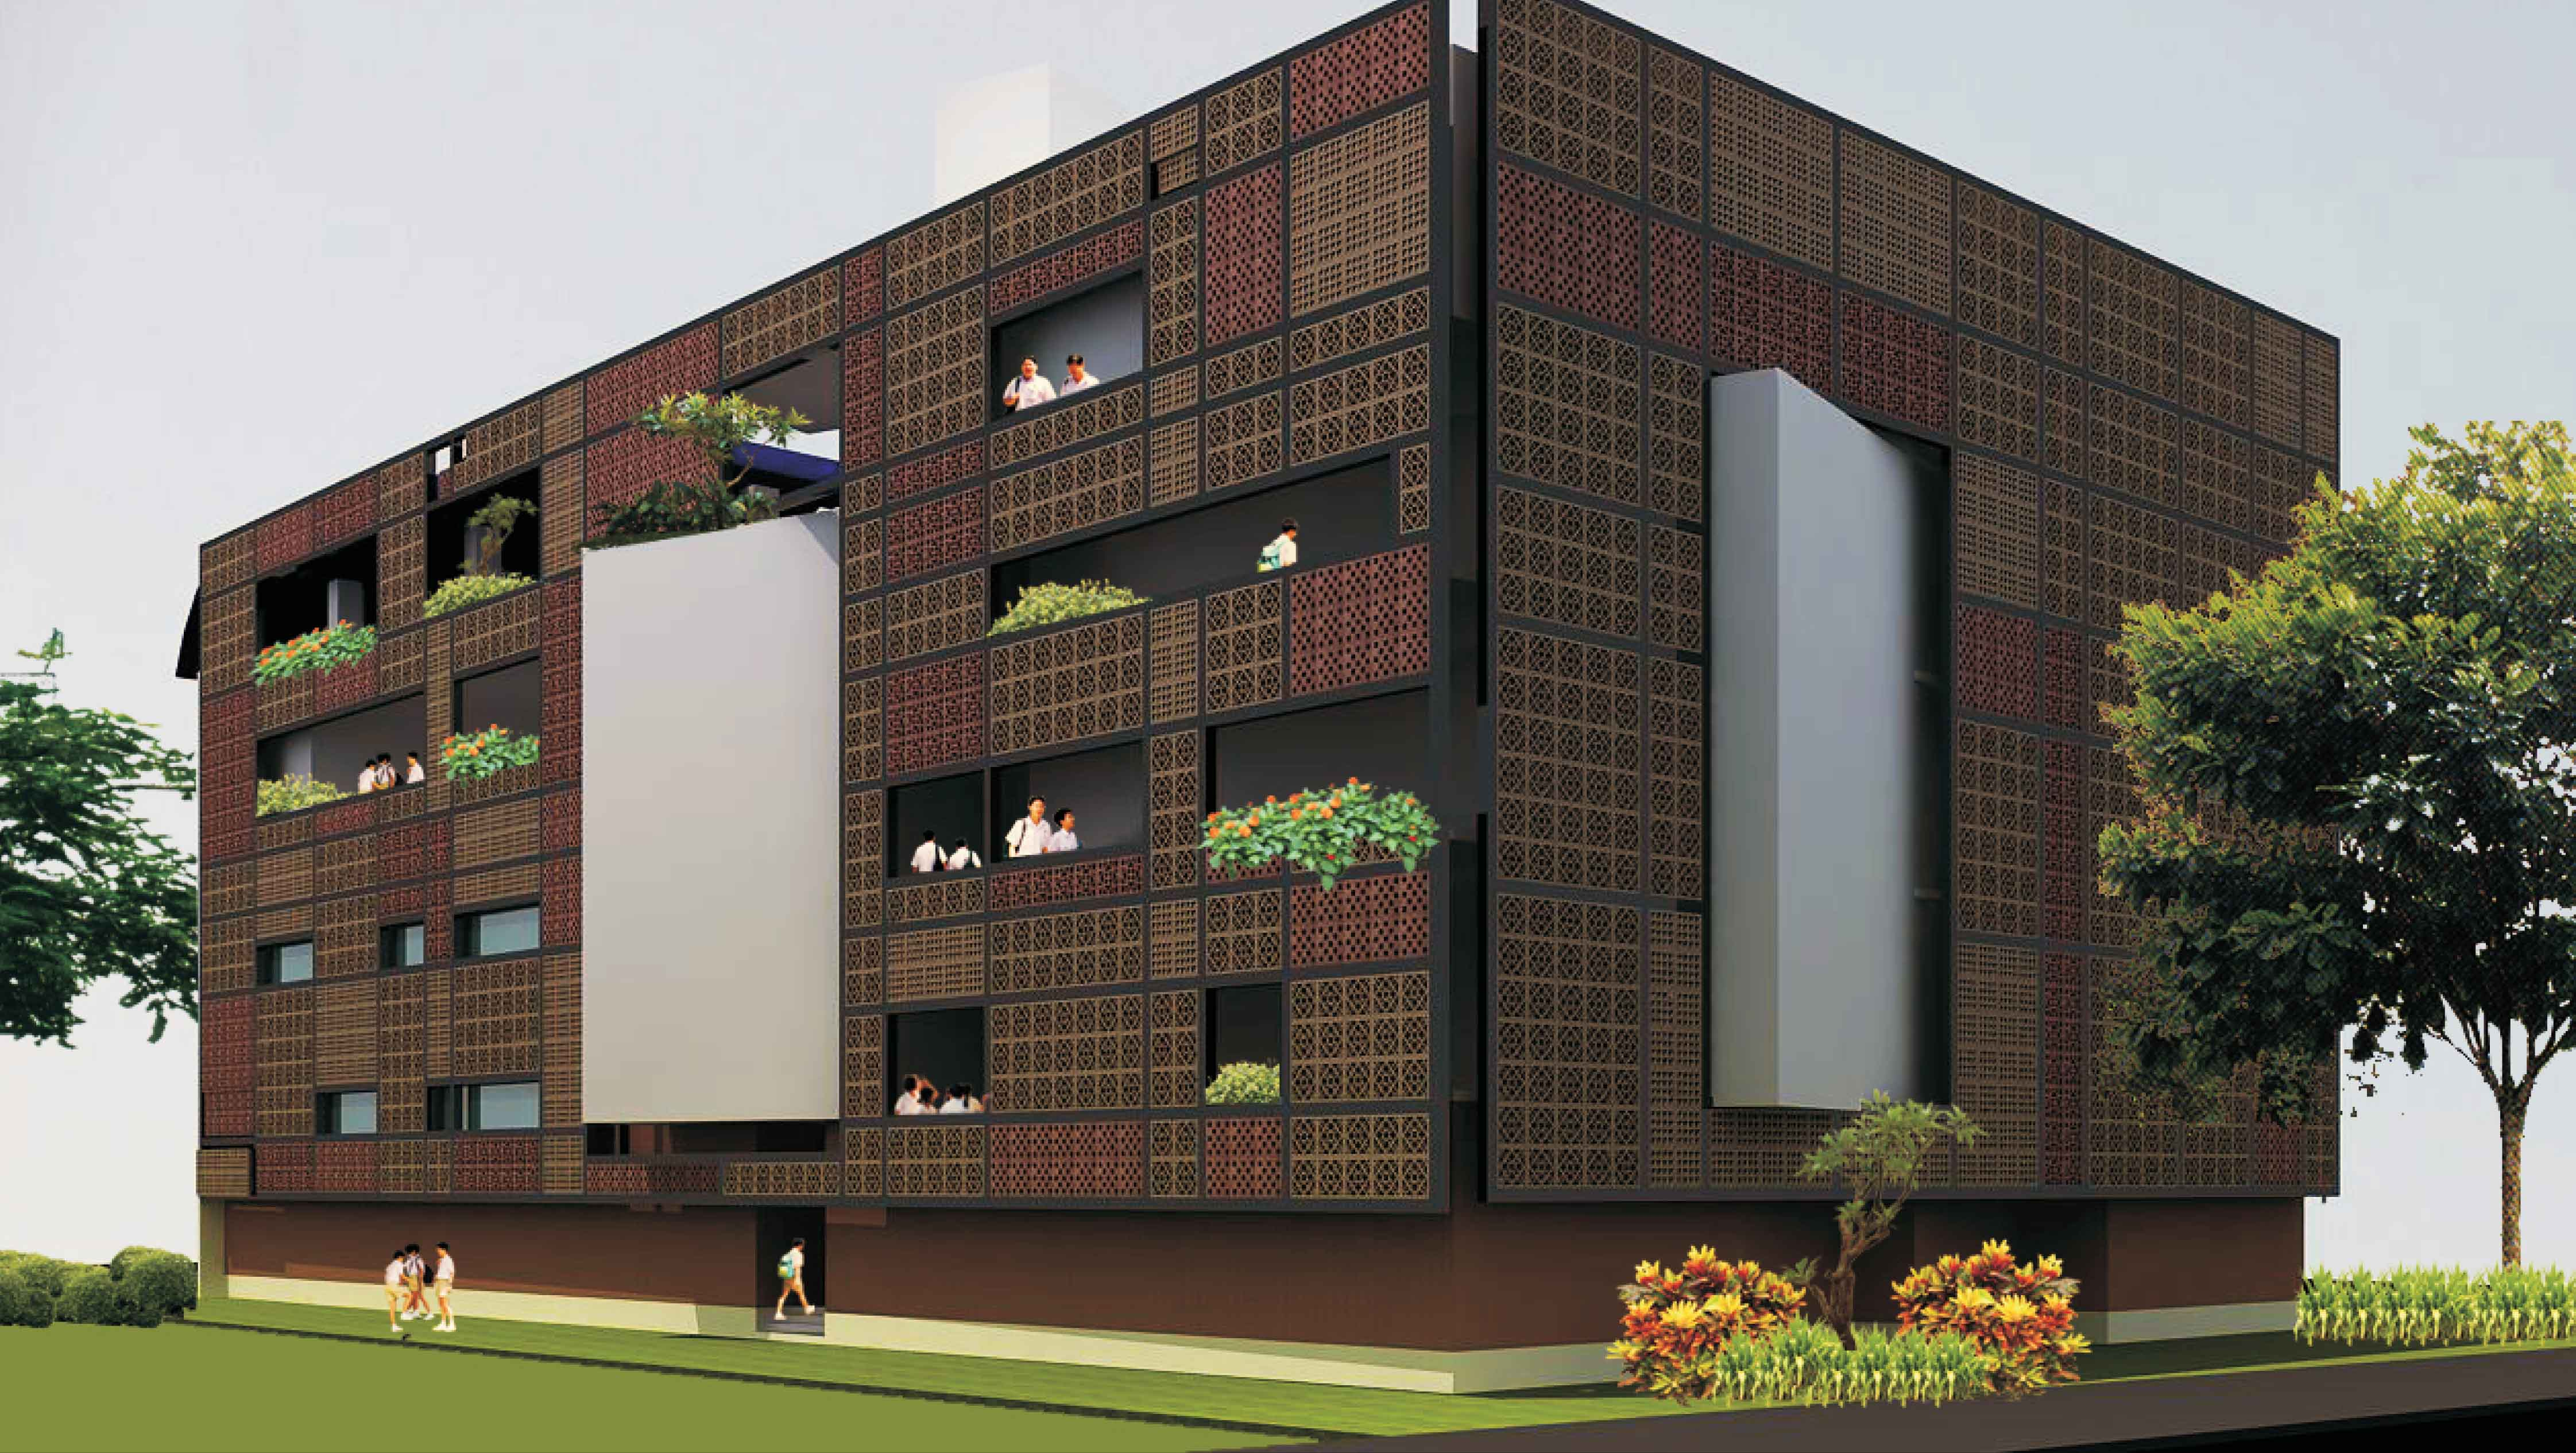 Architectural Screen Walls : Screen walls bsb architects architecture habitat